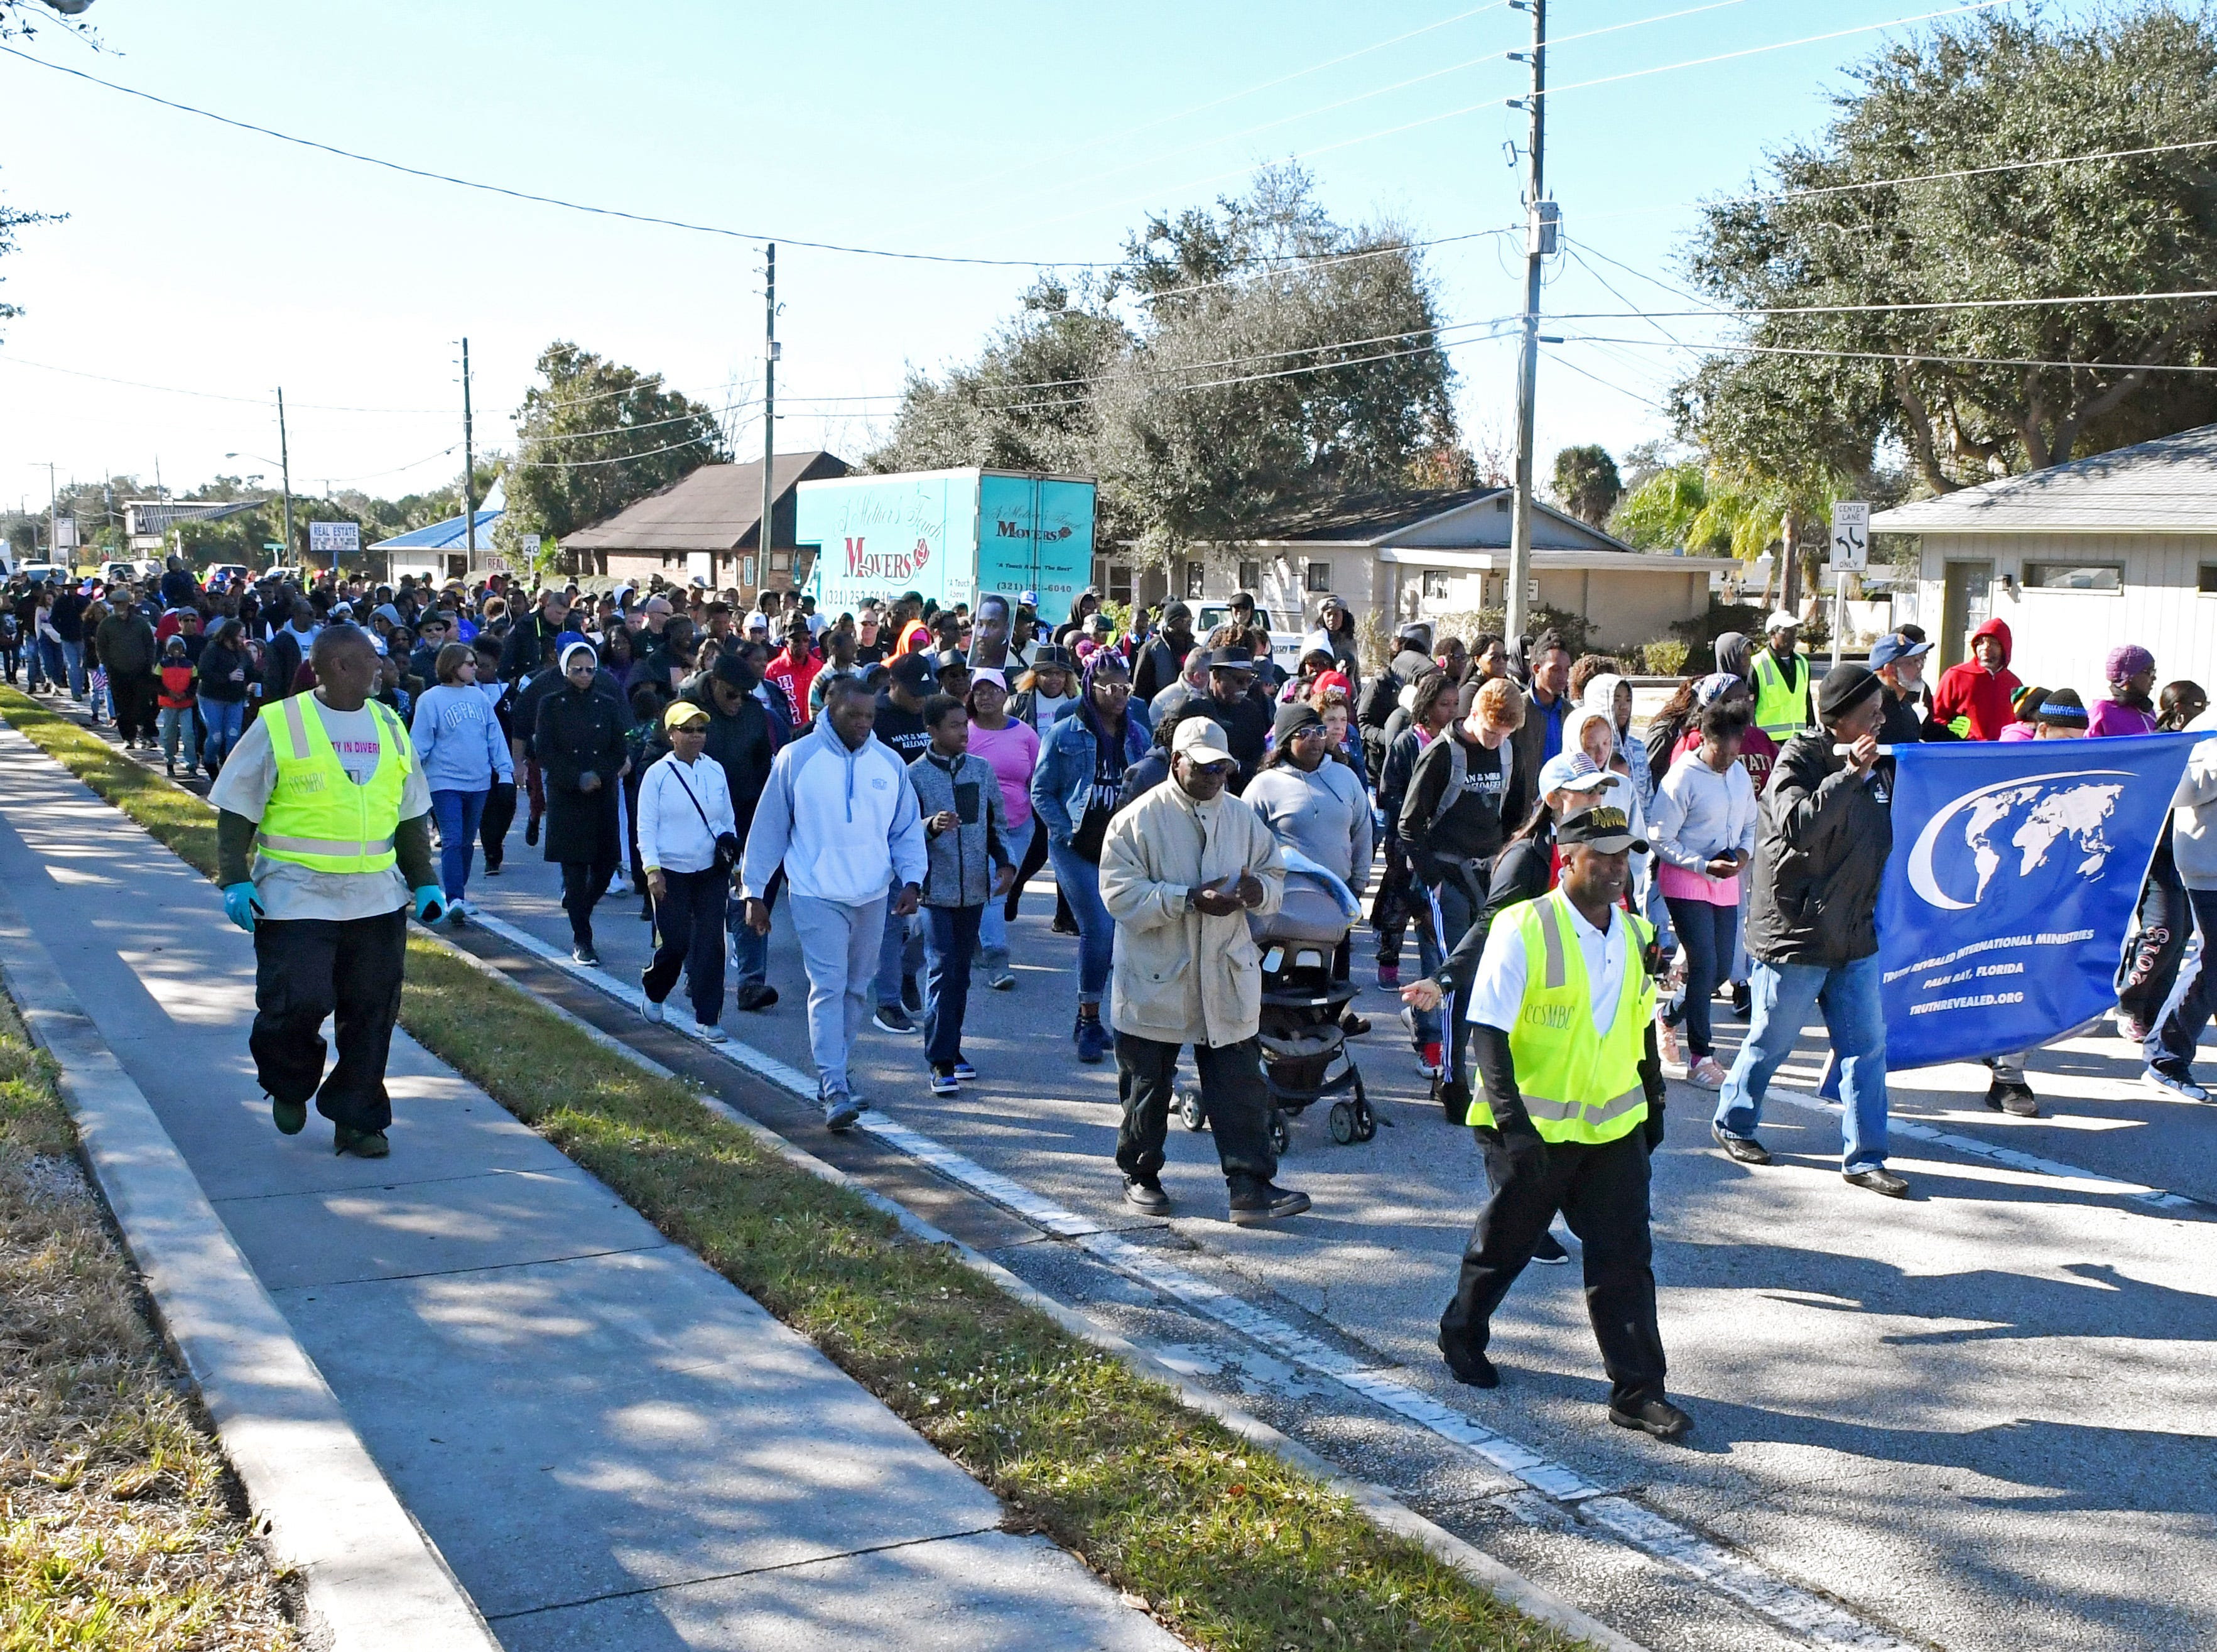 The 33rd year for the Melbourne, Fl. MLK Peace March, hosted by the Martin Luther King, Jr. Coalition, was held Monday morning.